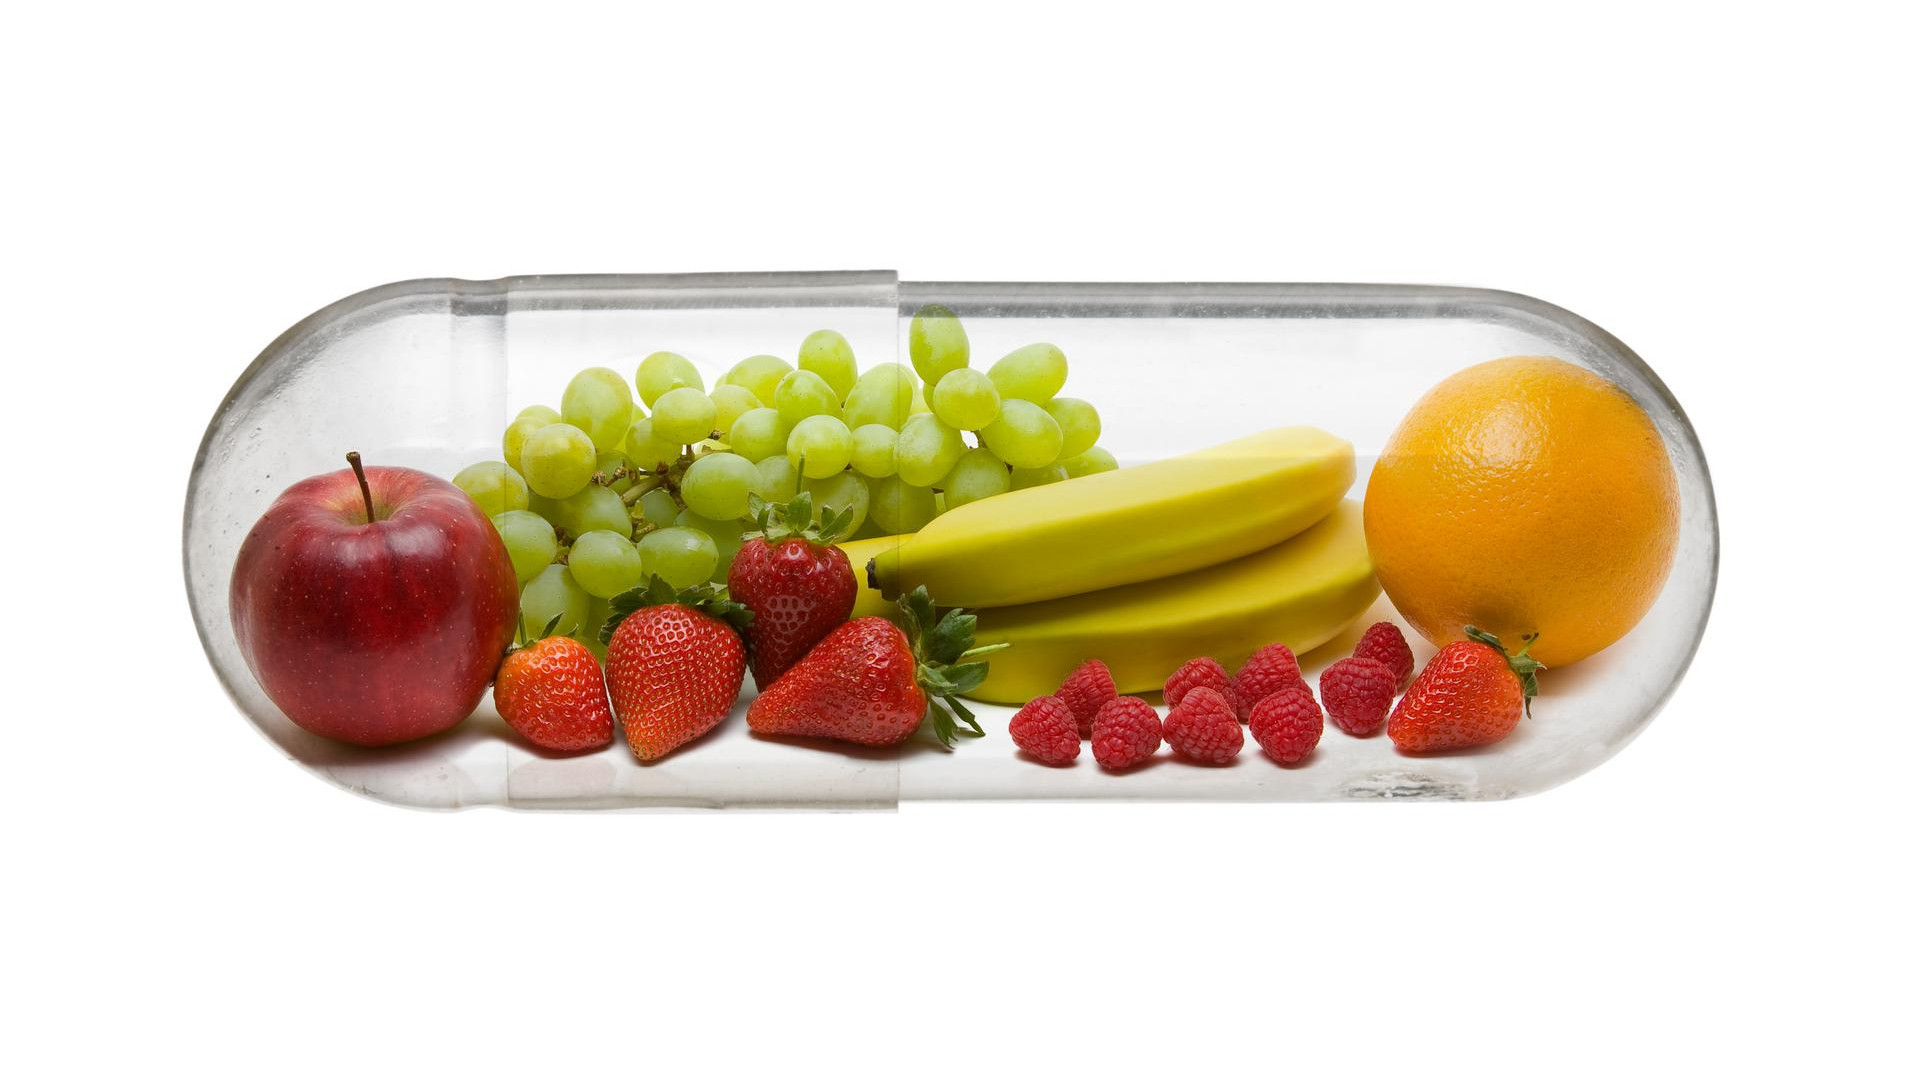 Nutraceuticals and Health Welfares Photo